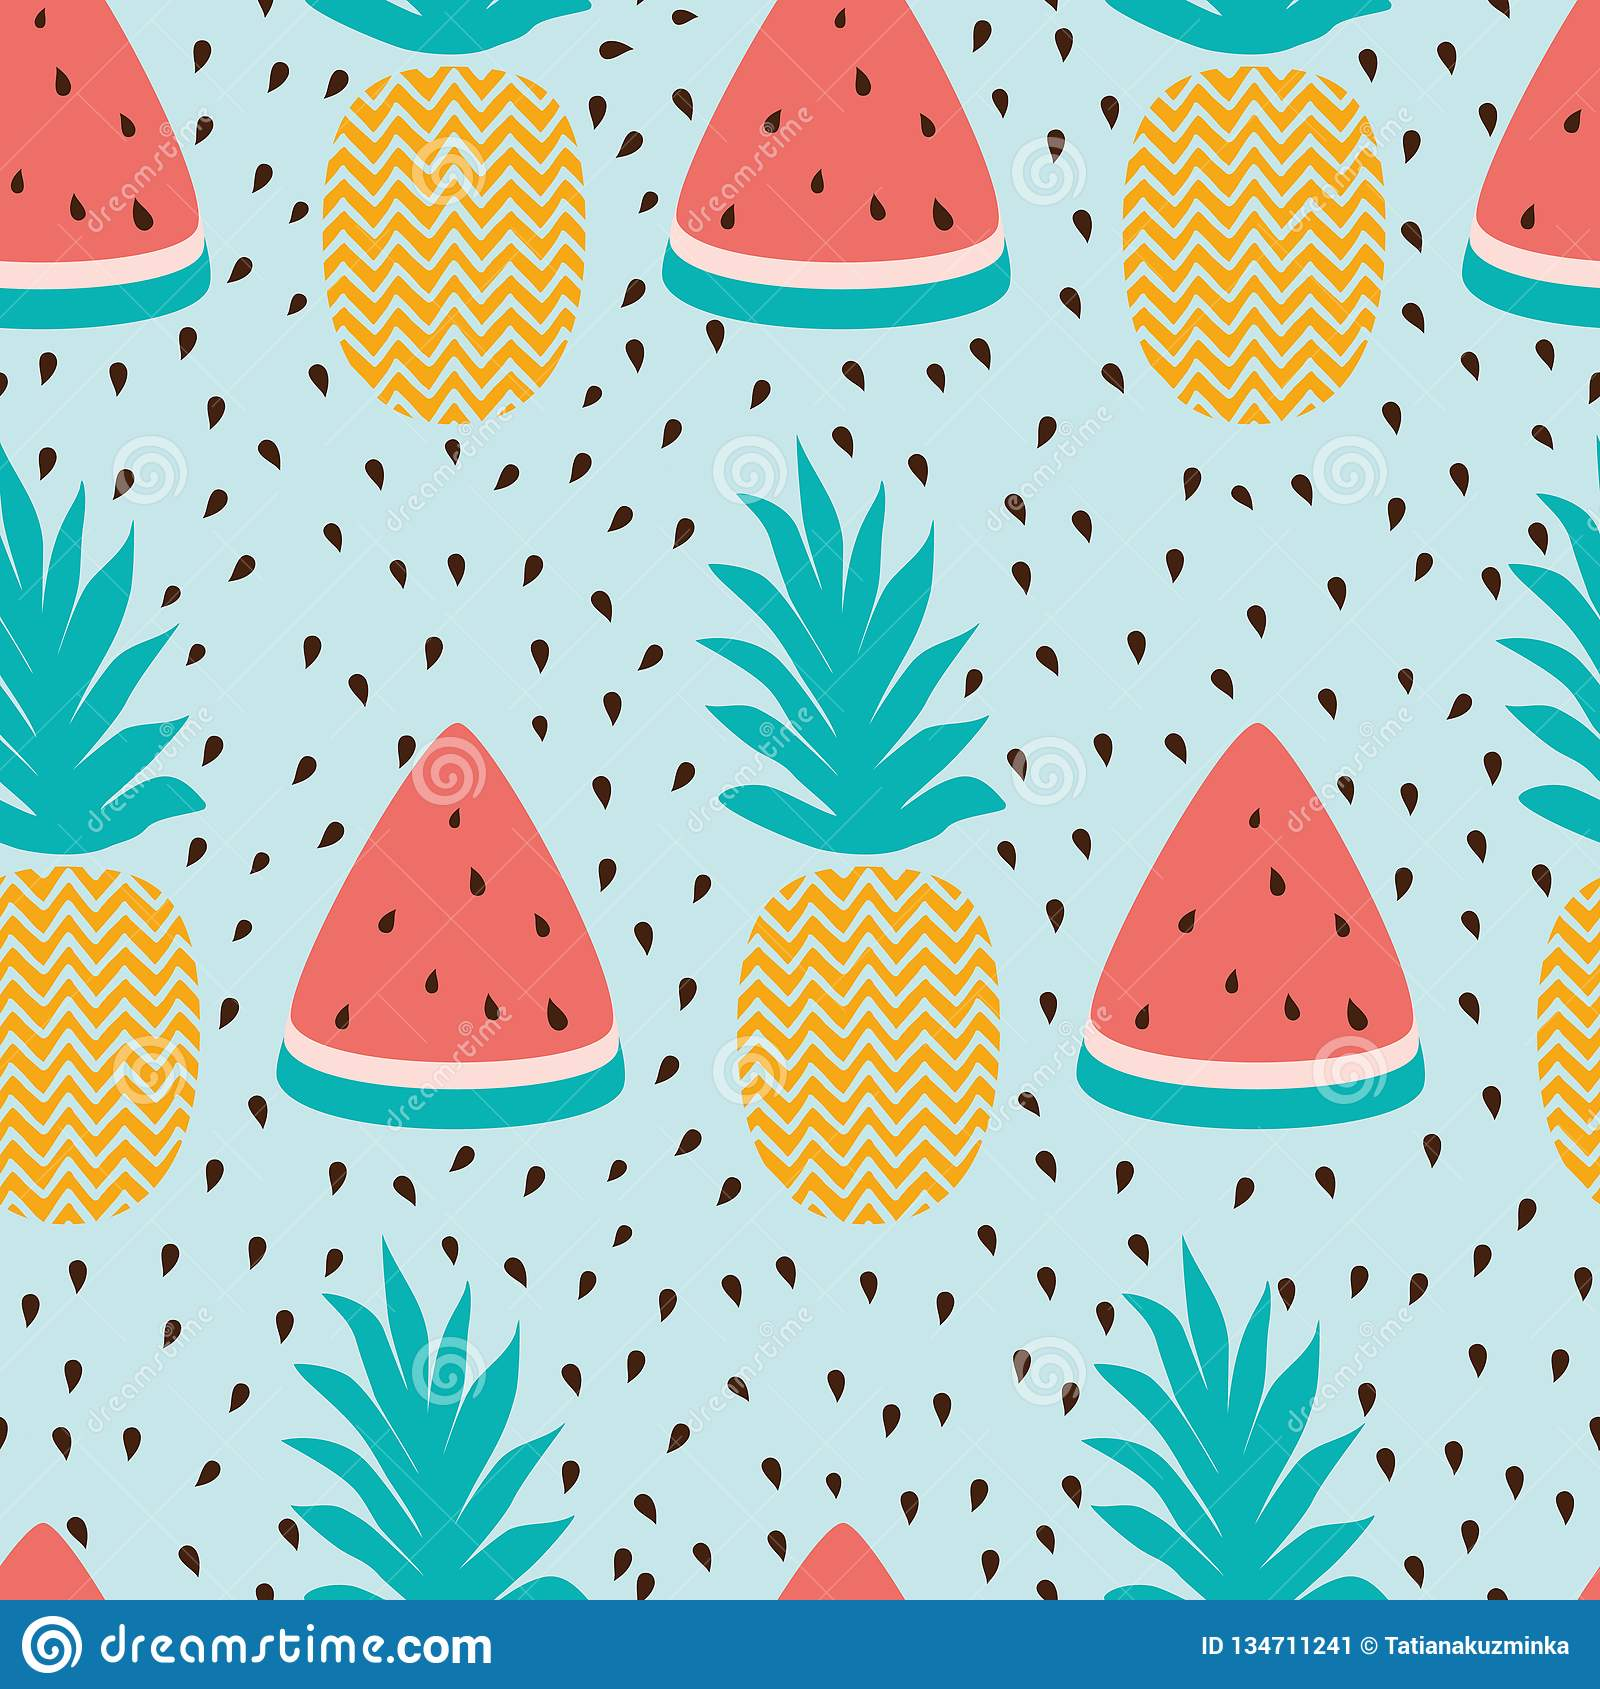 Pictures Of Fresh Fruit Wallpaper